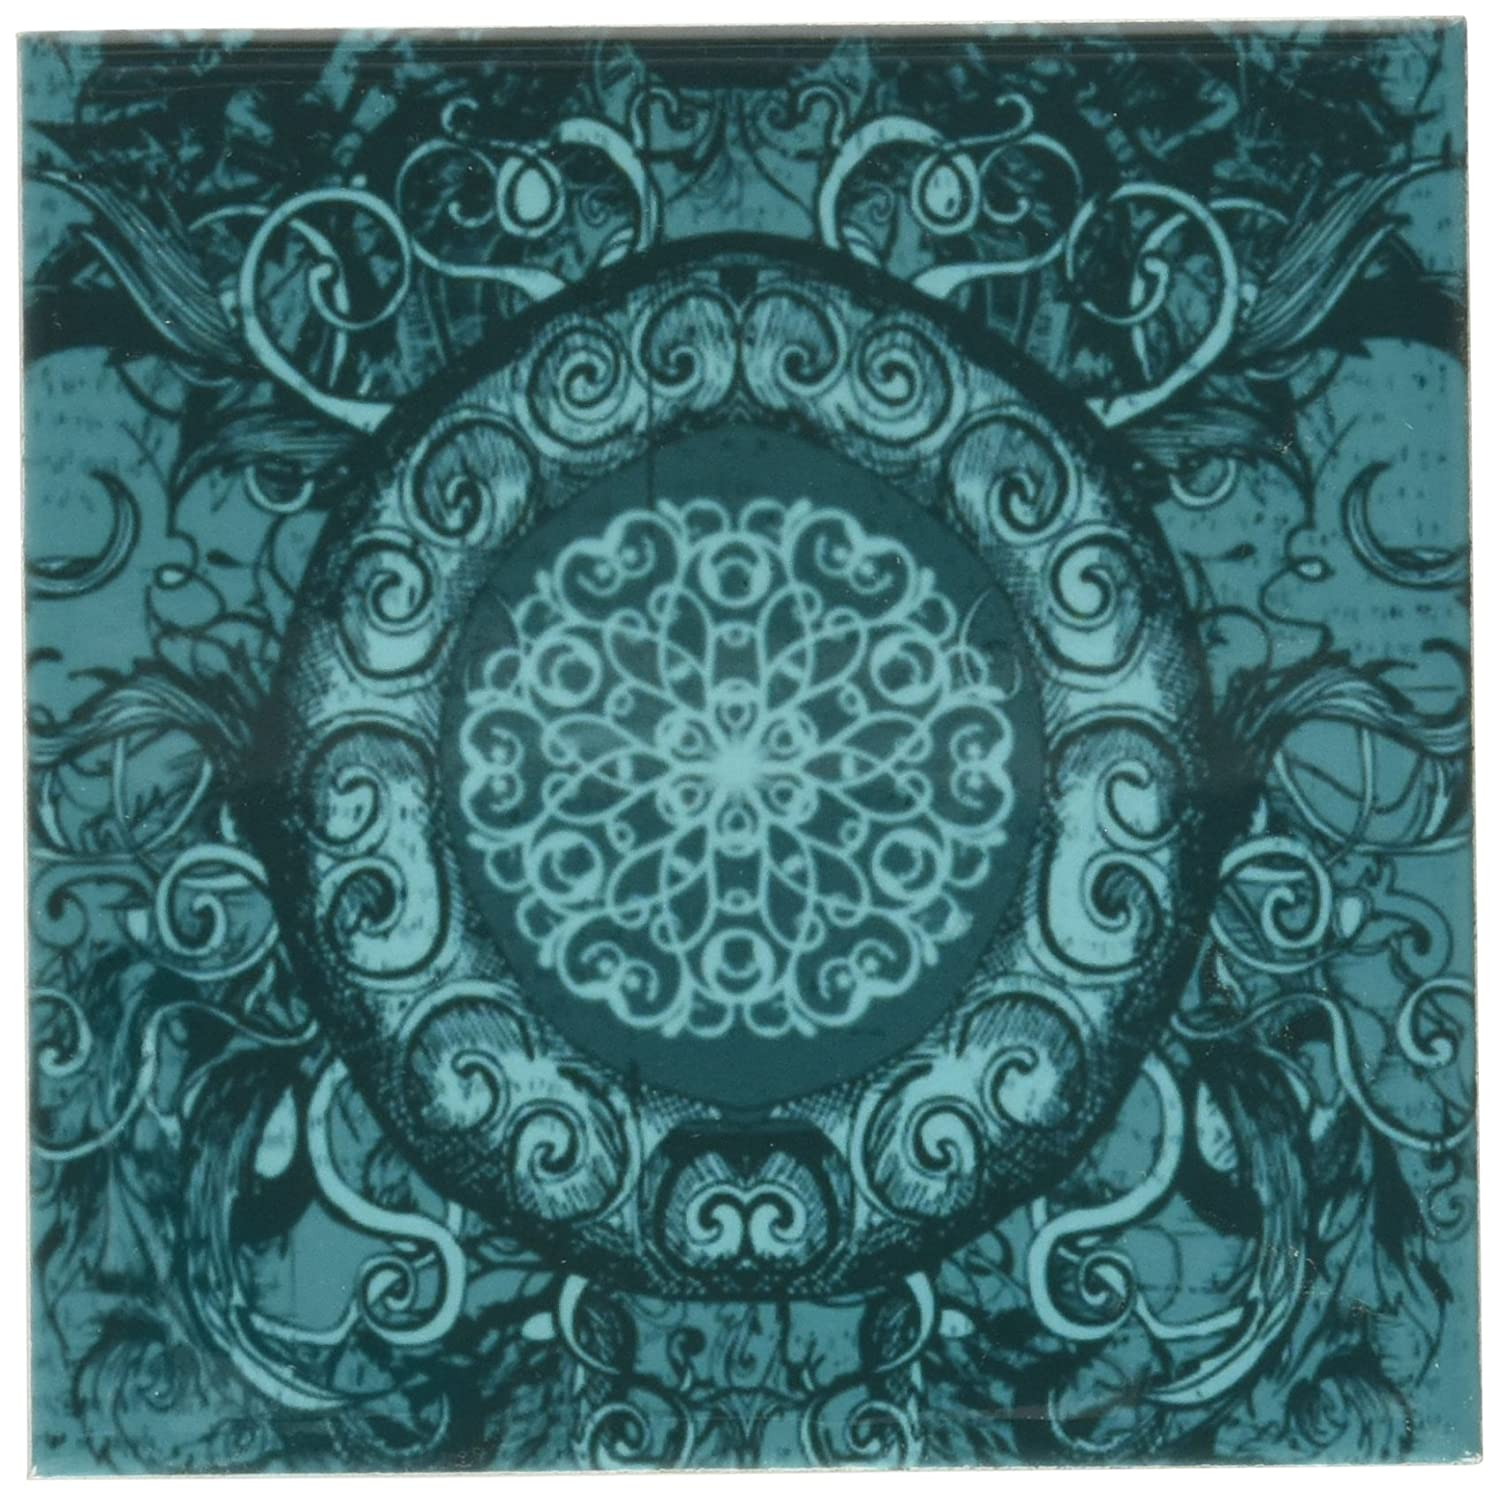 Set of 4 3dRose cst/_78442/_3 Renaissance Inspired Oval Design in Turquoise Ceramic Tile Coasters